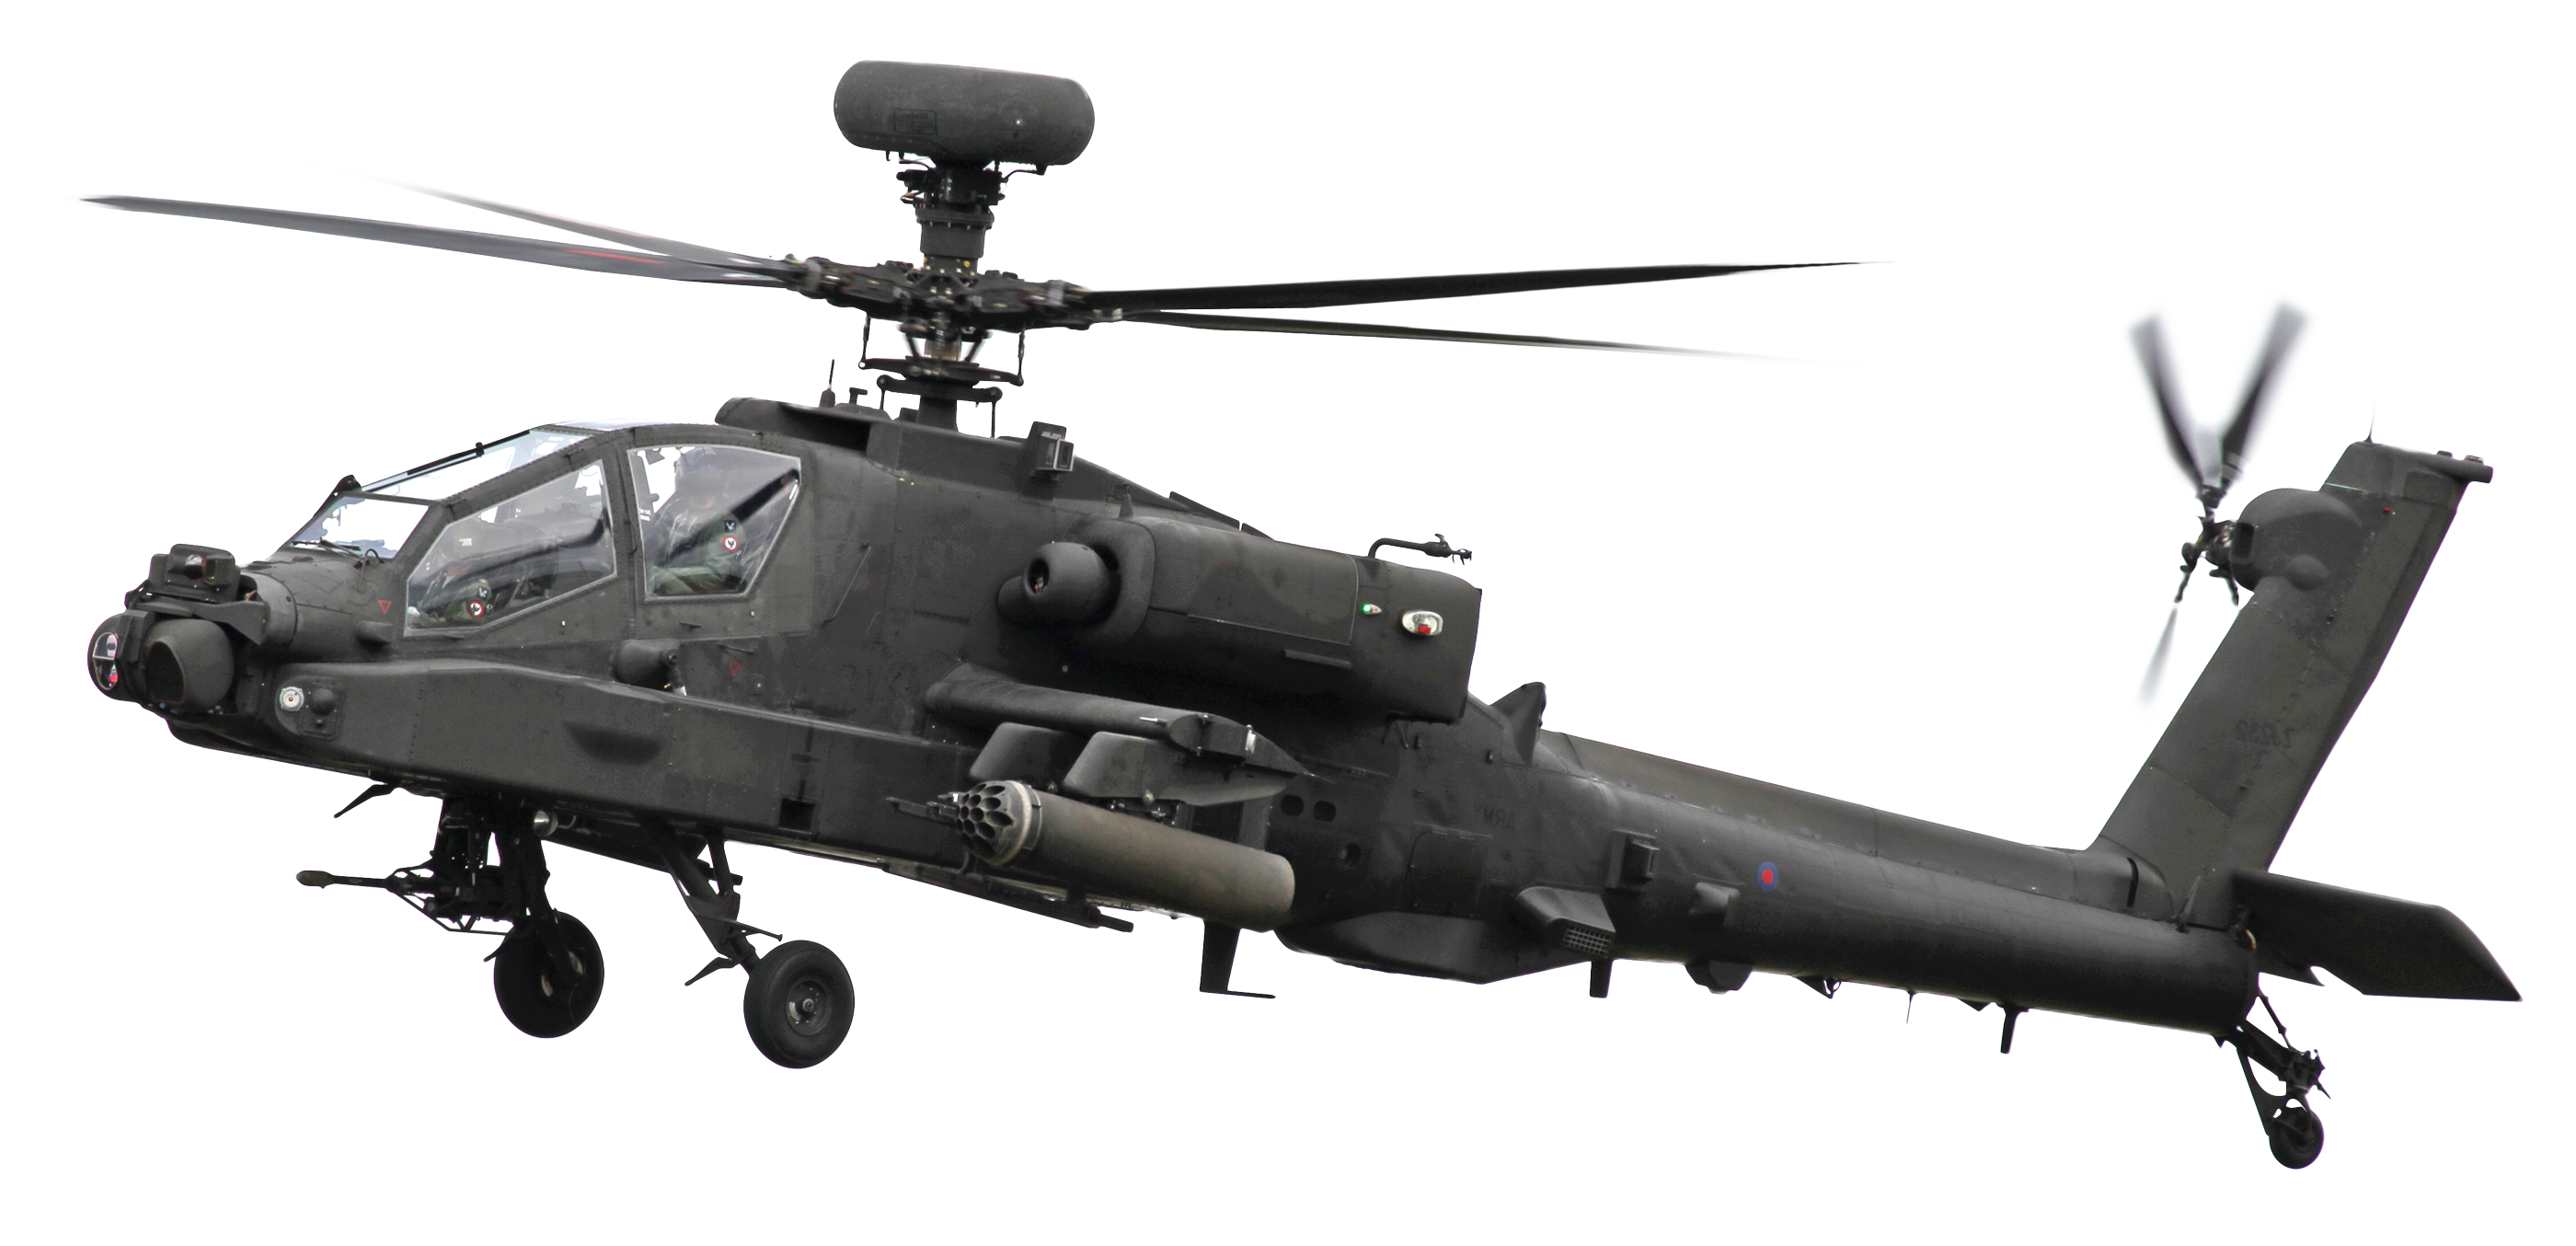 Helicopter png. Image pngpix